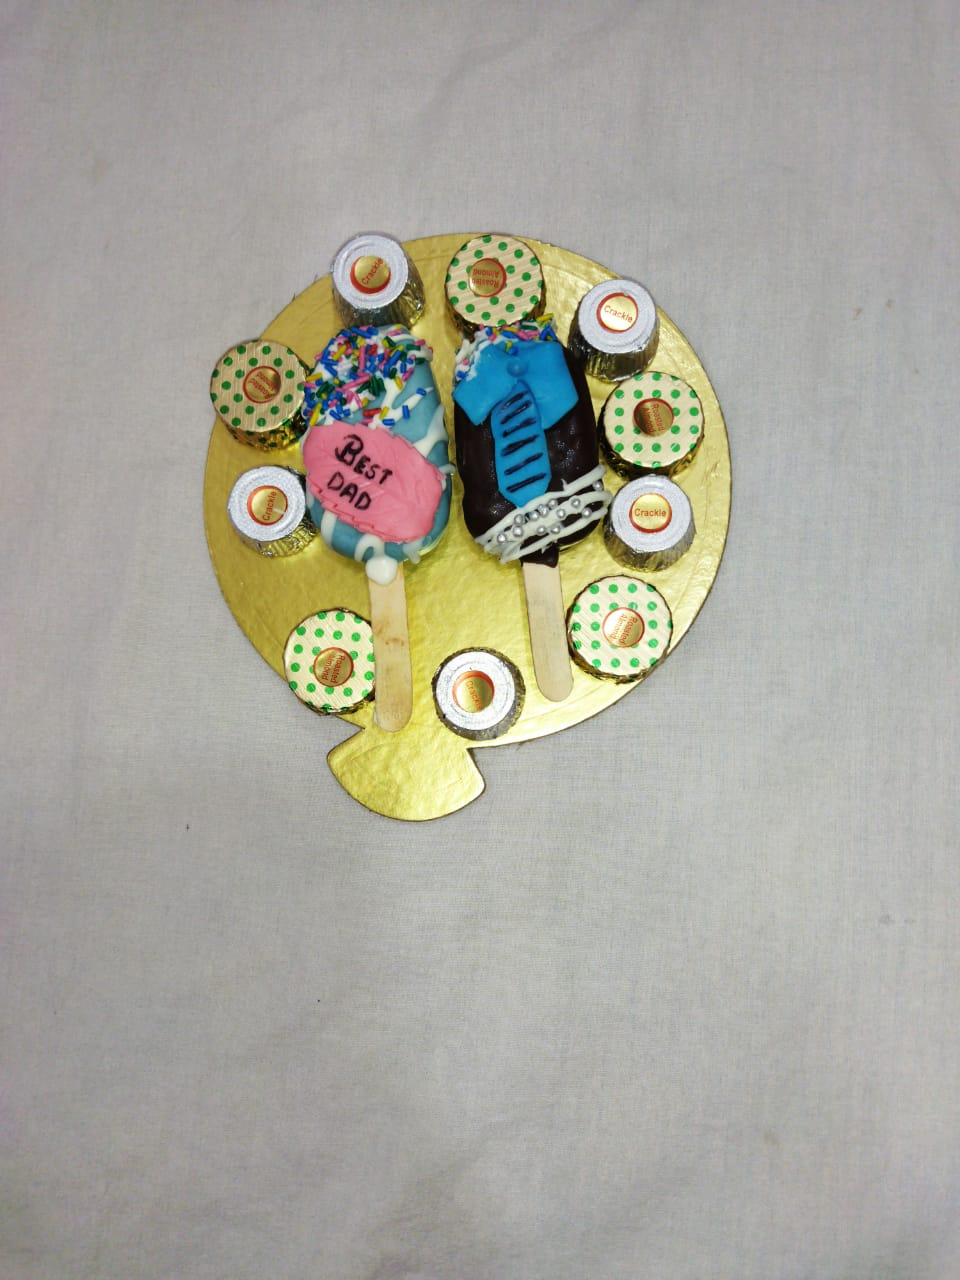 Cakesicles and choclates Designs, Images, Price Near Me